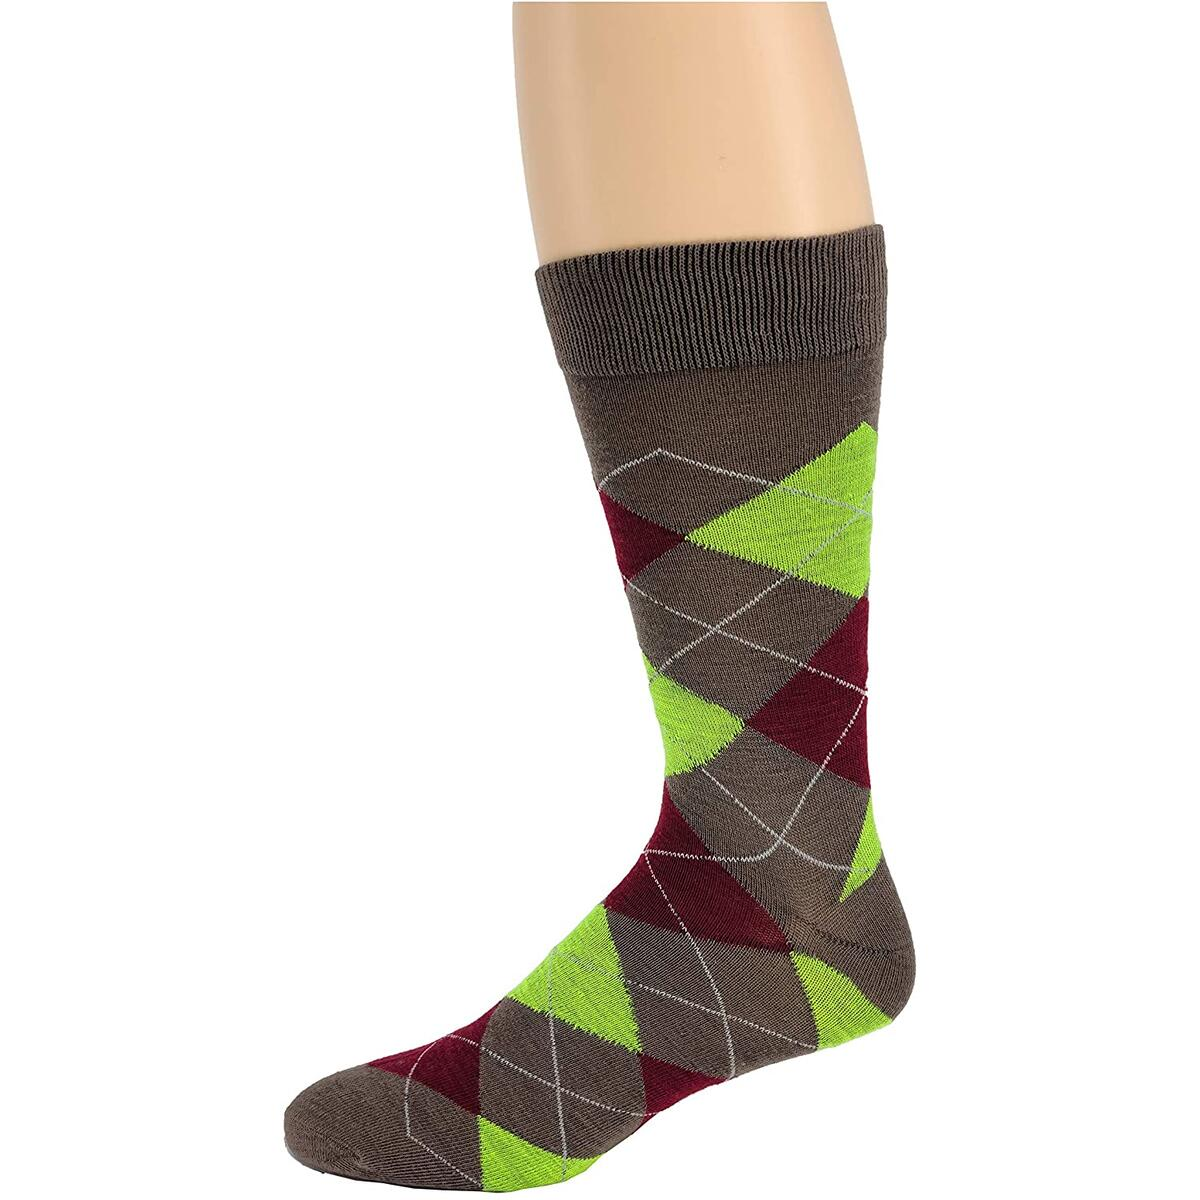 Debra Weitzner Mens Dress Socks Cotton Colorful MULTI STRIPED PATTERN ONLY 6 Pairs With Gift Box color bright argyle size 10-13